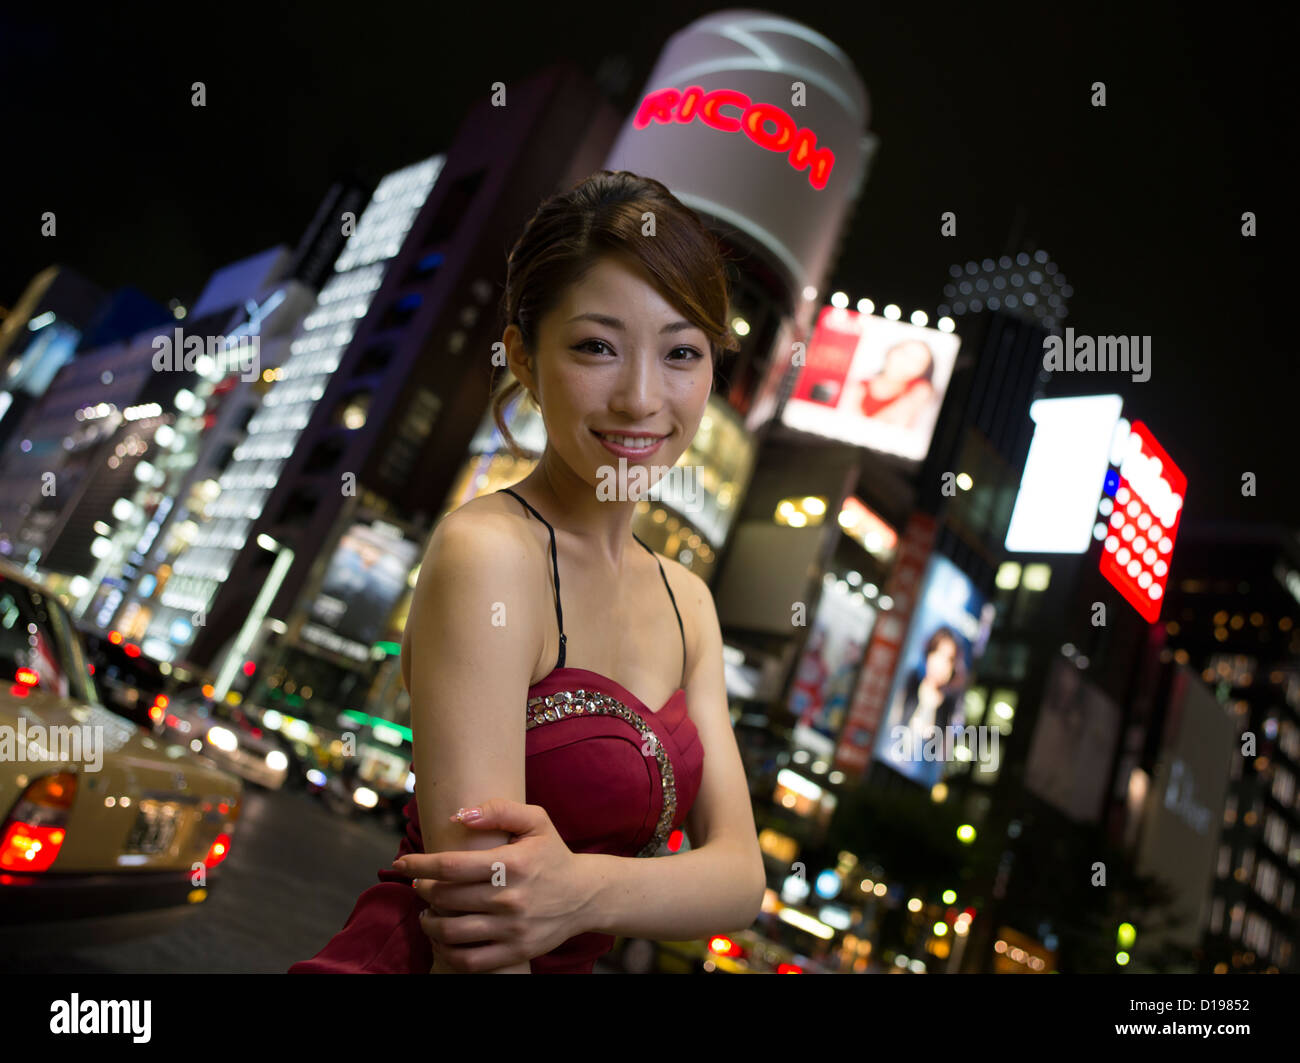 Japanese girl enjoying the shopping and nightlife of Ginza 4-chome, Tokyo, Japan - Stock Image